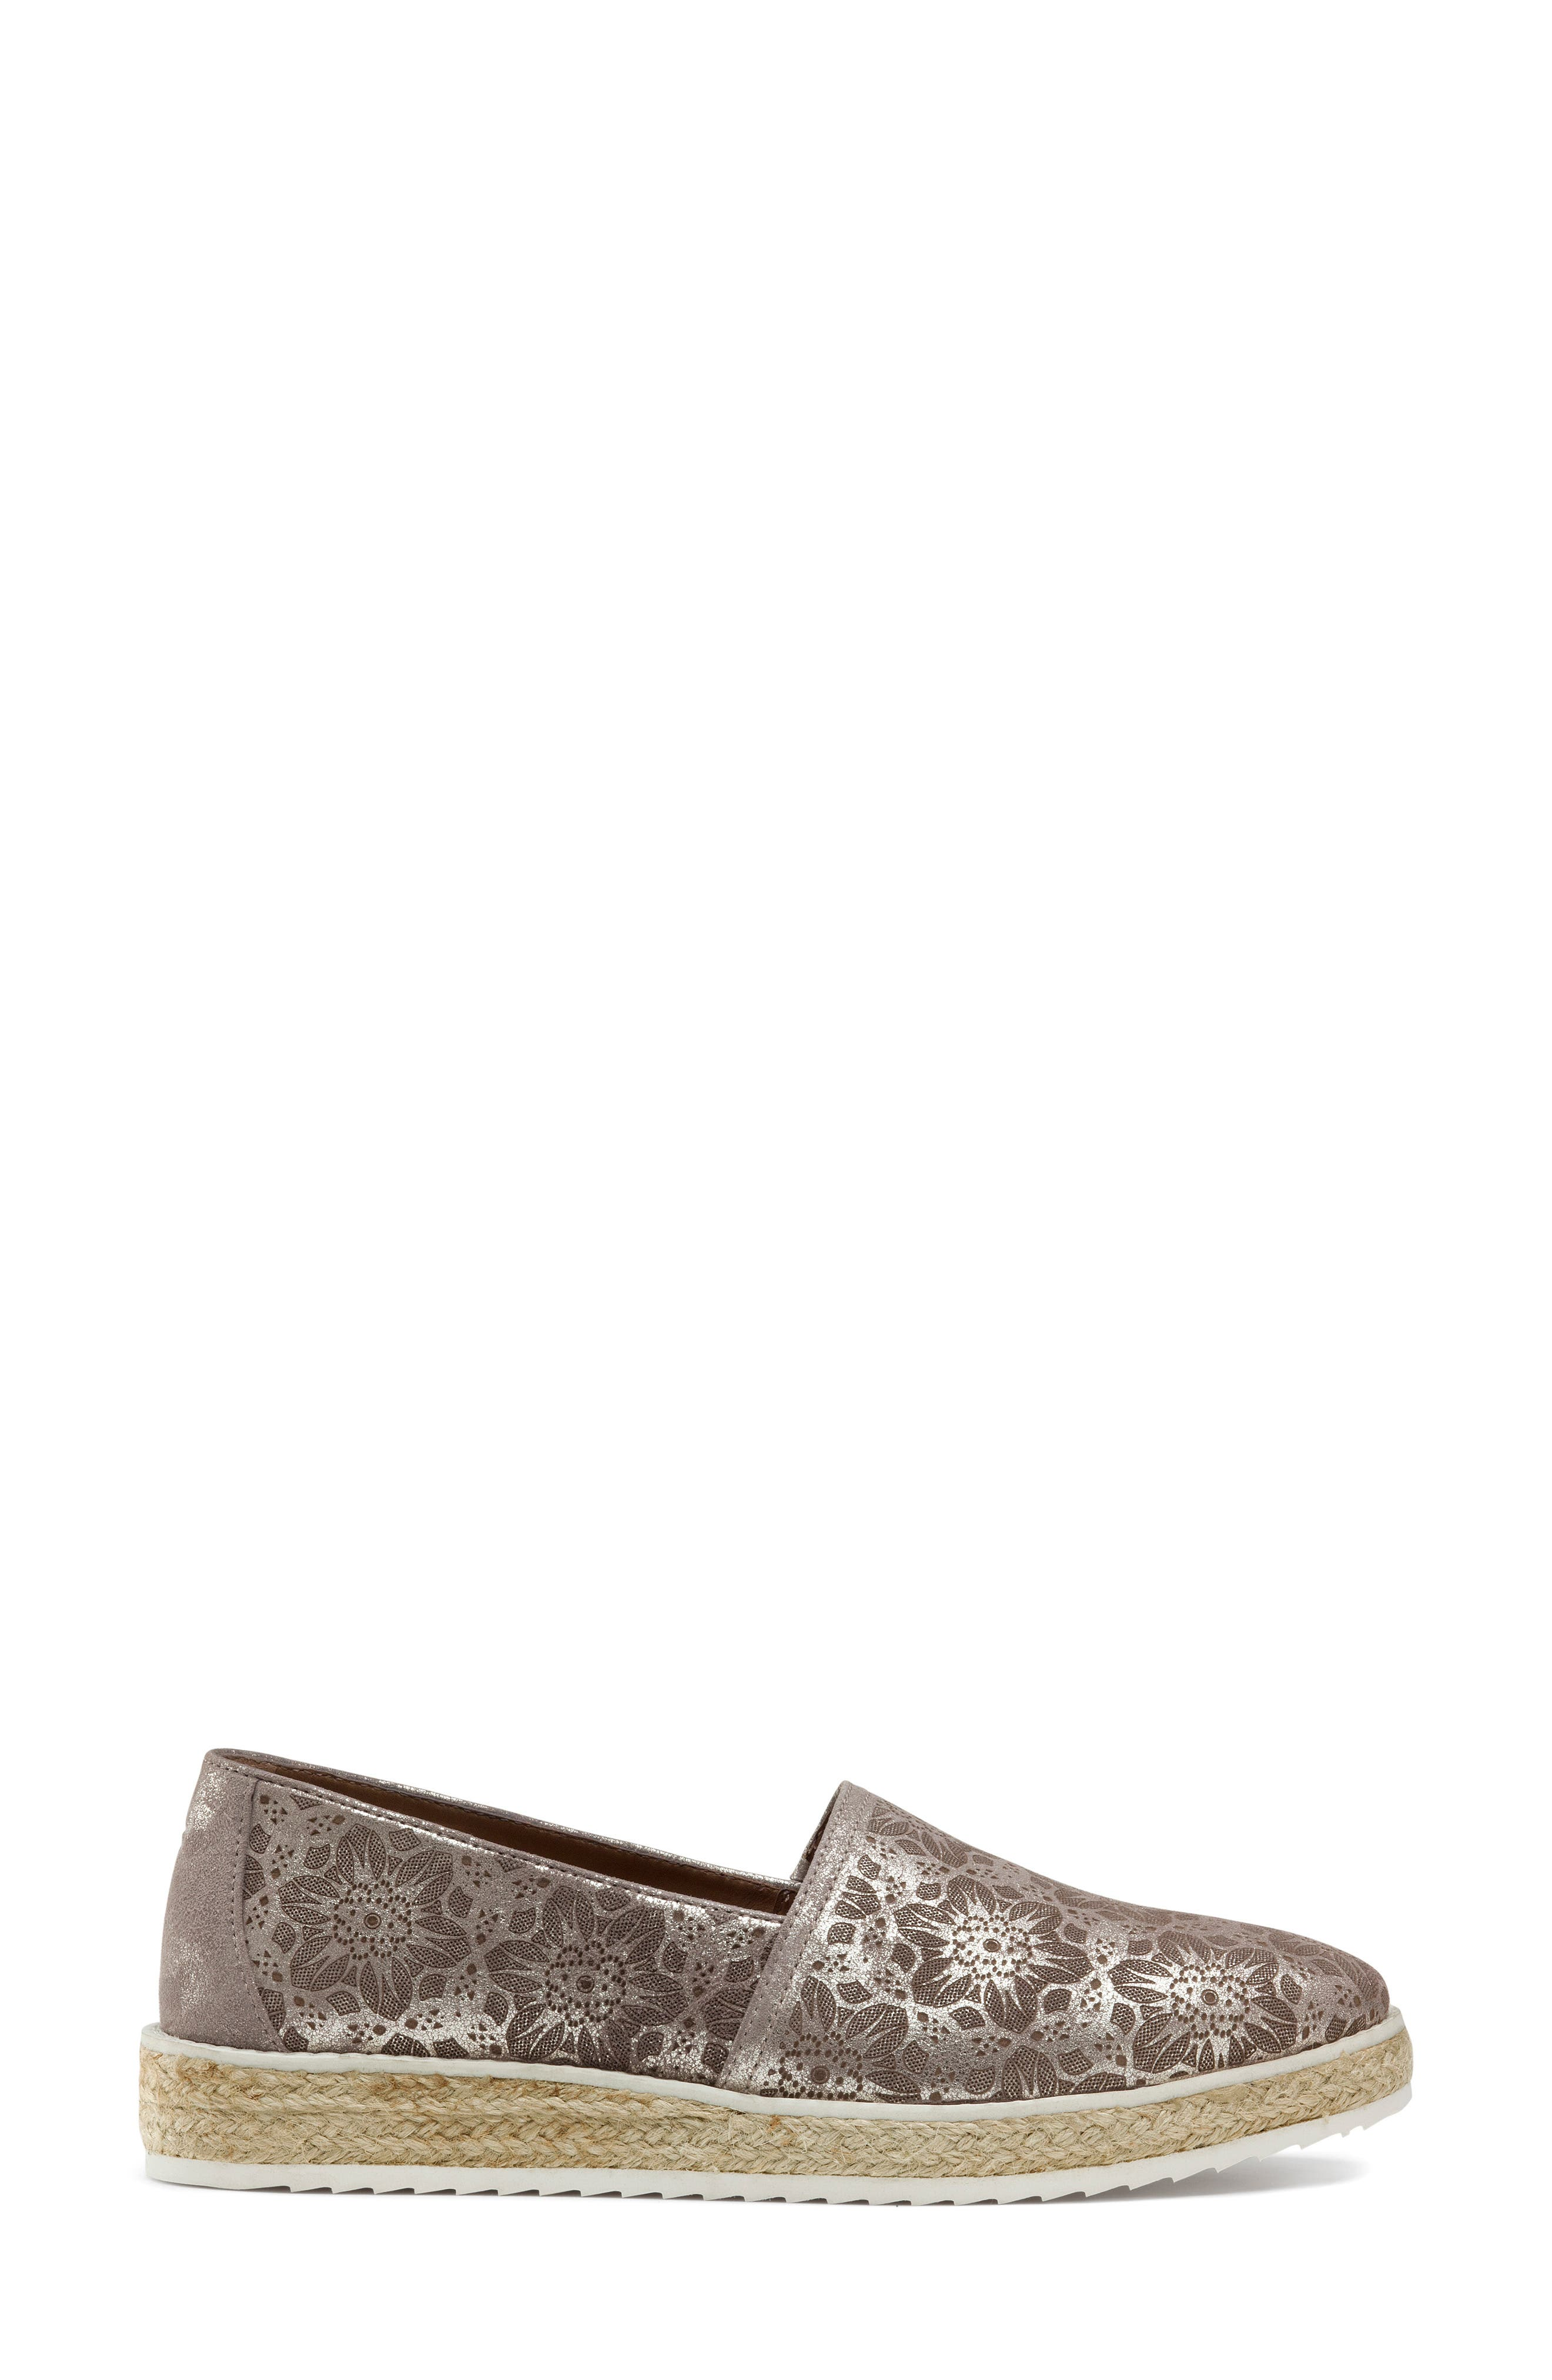 Cailyn Flat,                             Alternate thumbnail 3, color,                             PEWTER METALLIC SUEDE